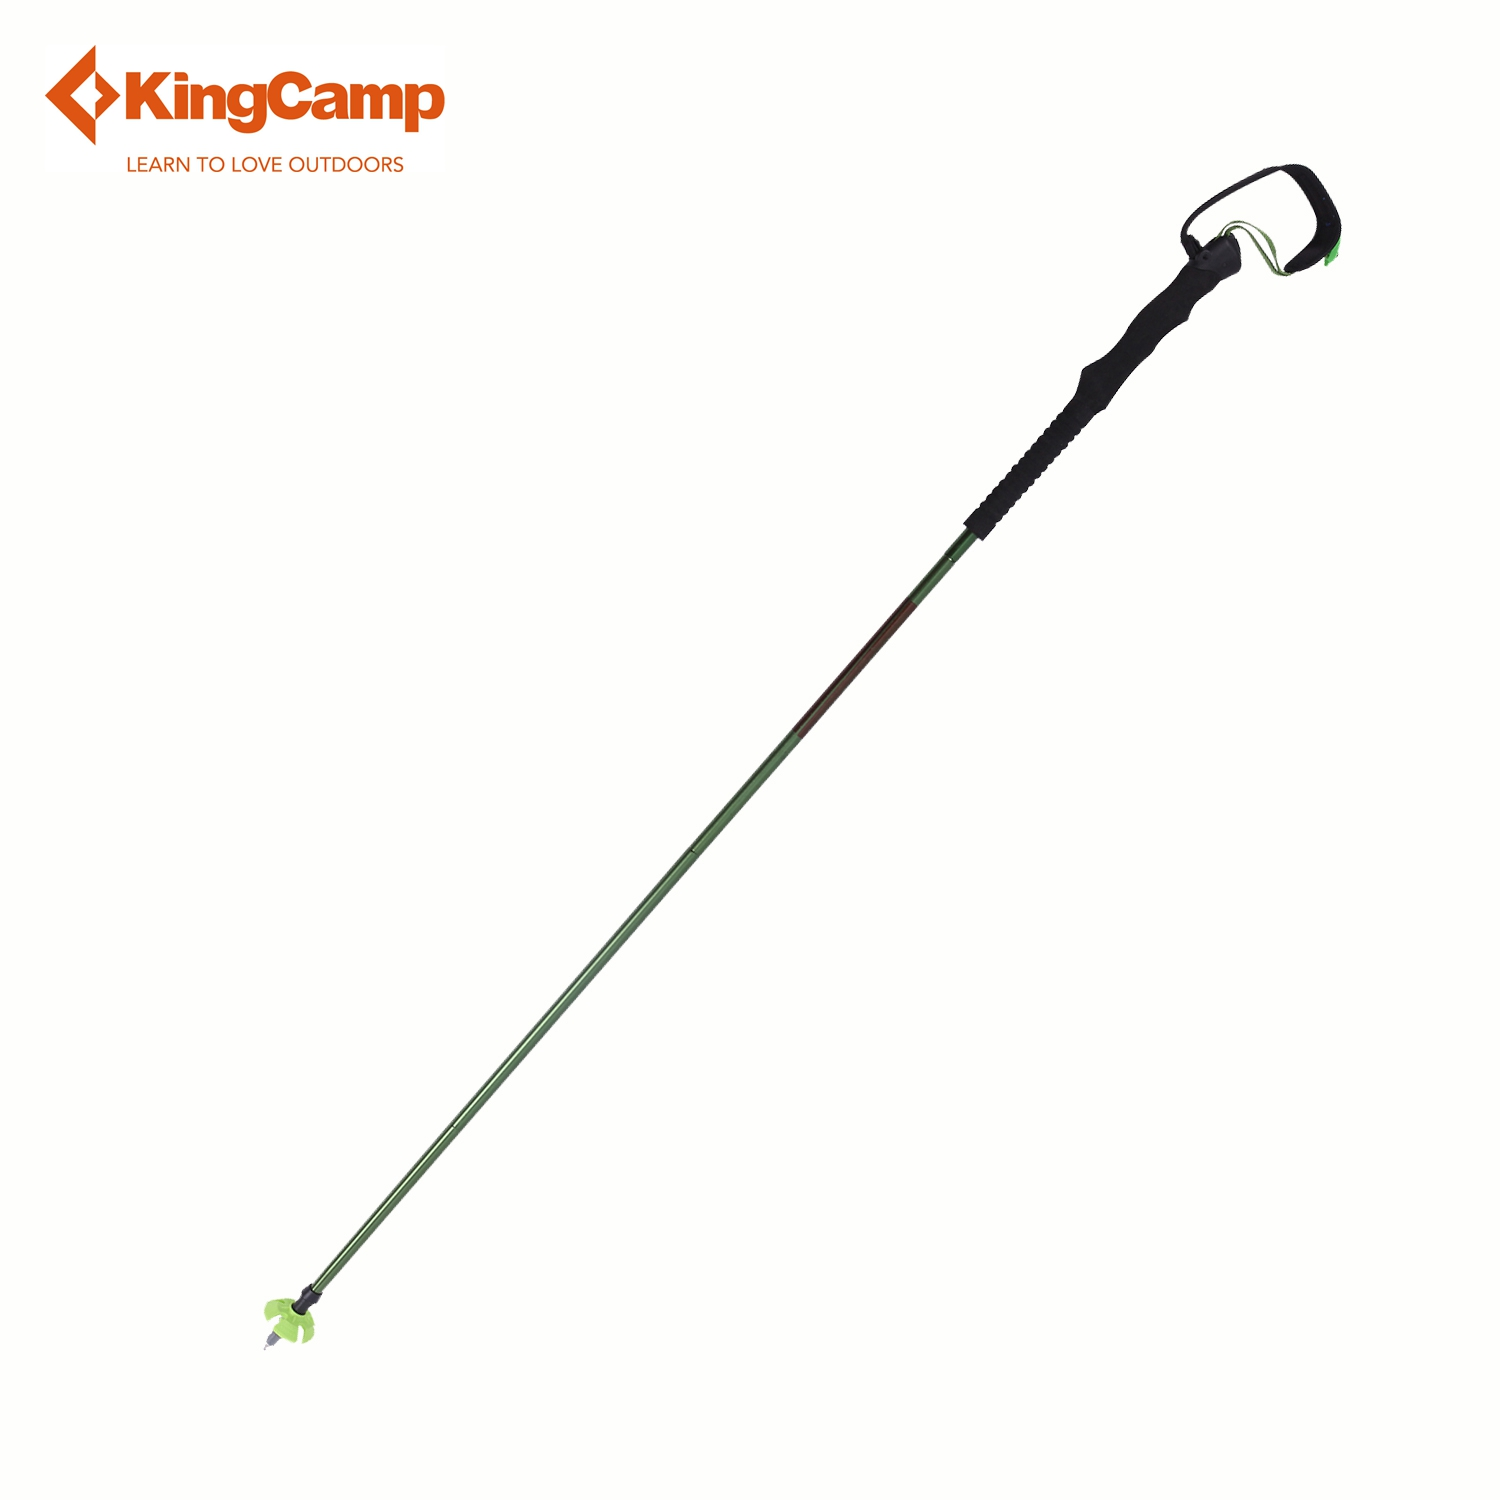 KingCamp Camping Nordic Walking Poles Aluminum Walking Stick Trekking Pole Portable Adjustable Ultralight 4-section (Single) point break abd8068 2pcs lot 190g pcs carbon fiber trekking pole 3 section ultralight adjustable hiking alpenstock walking stick